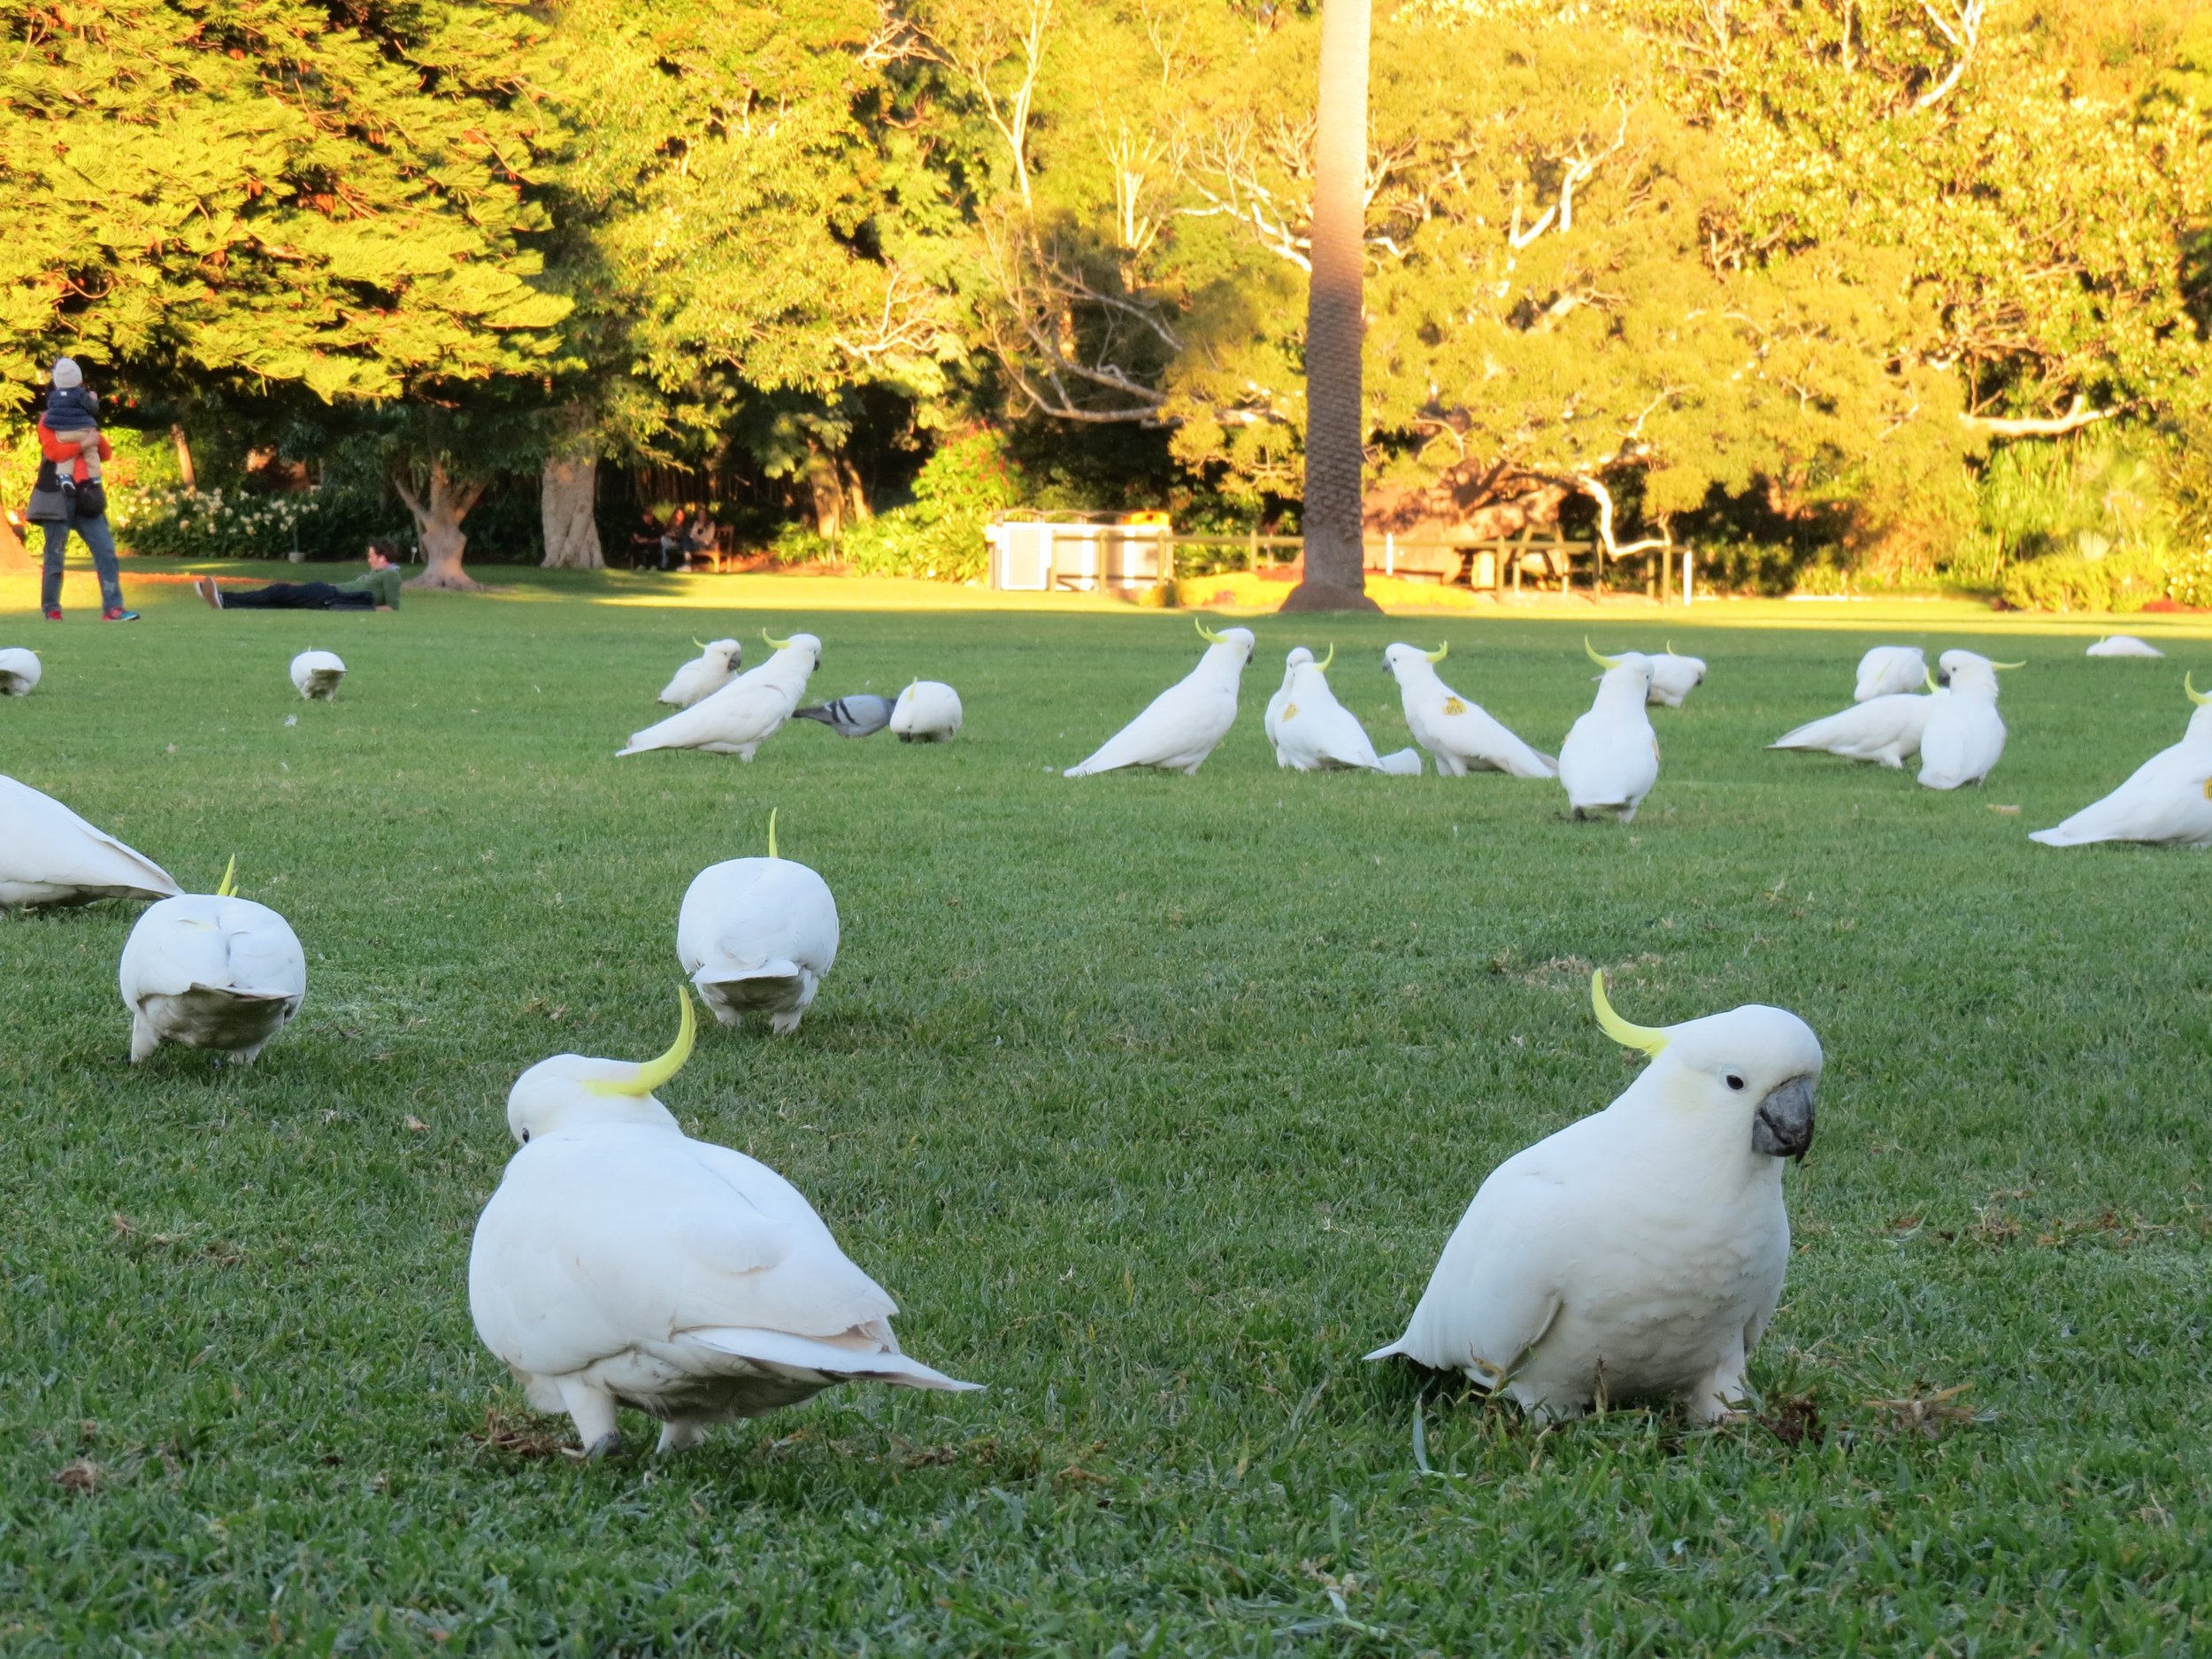 Sulphur-Crested Cockatoos at sunset on the lawn of the Royal Botanic Gardens